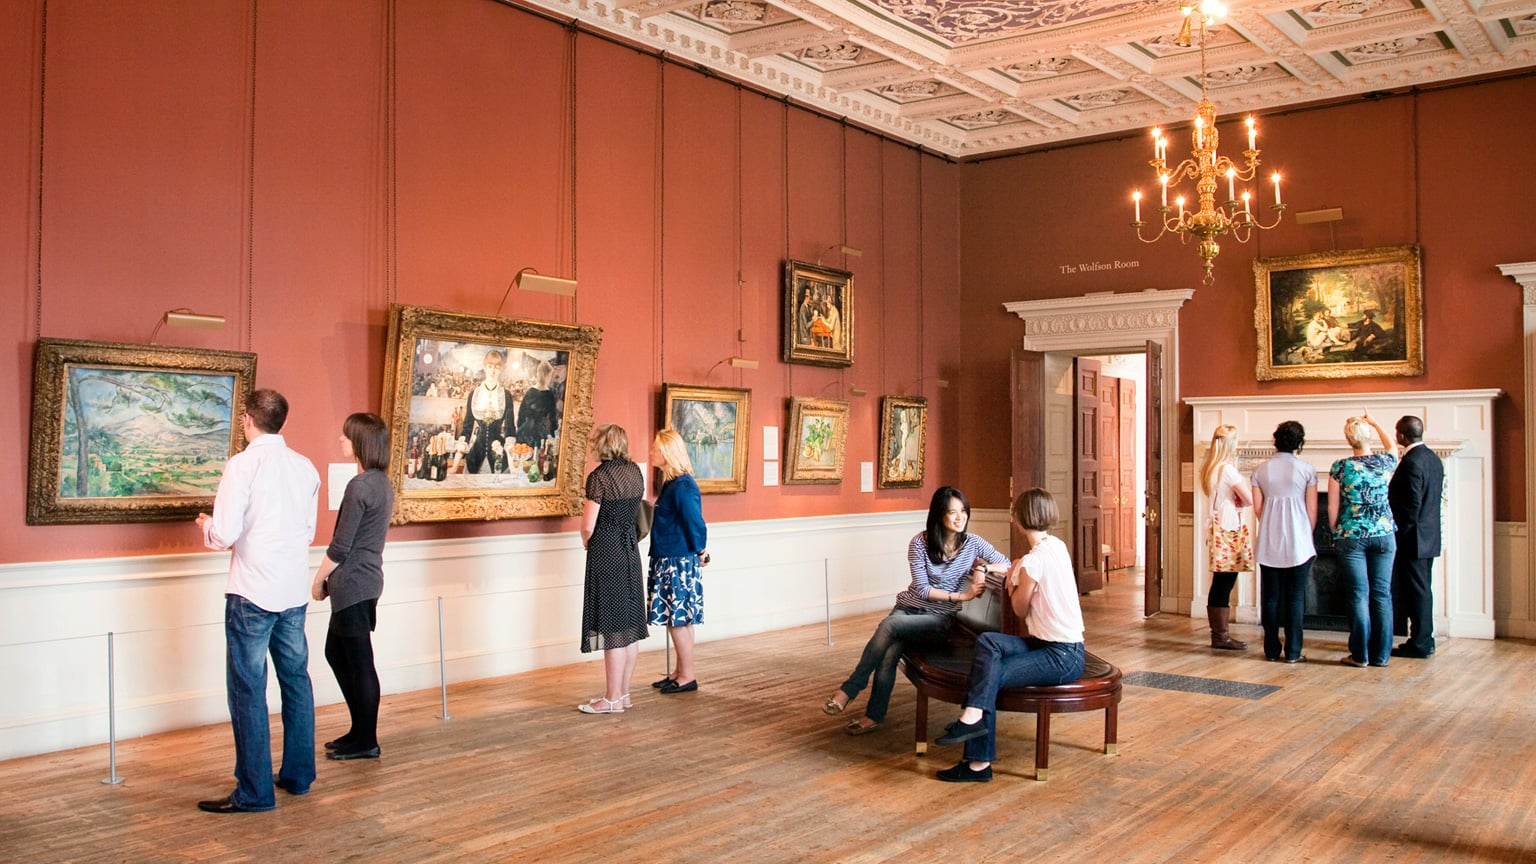 2. The Courtauld Gallery, London - Free with National Art Pass